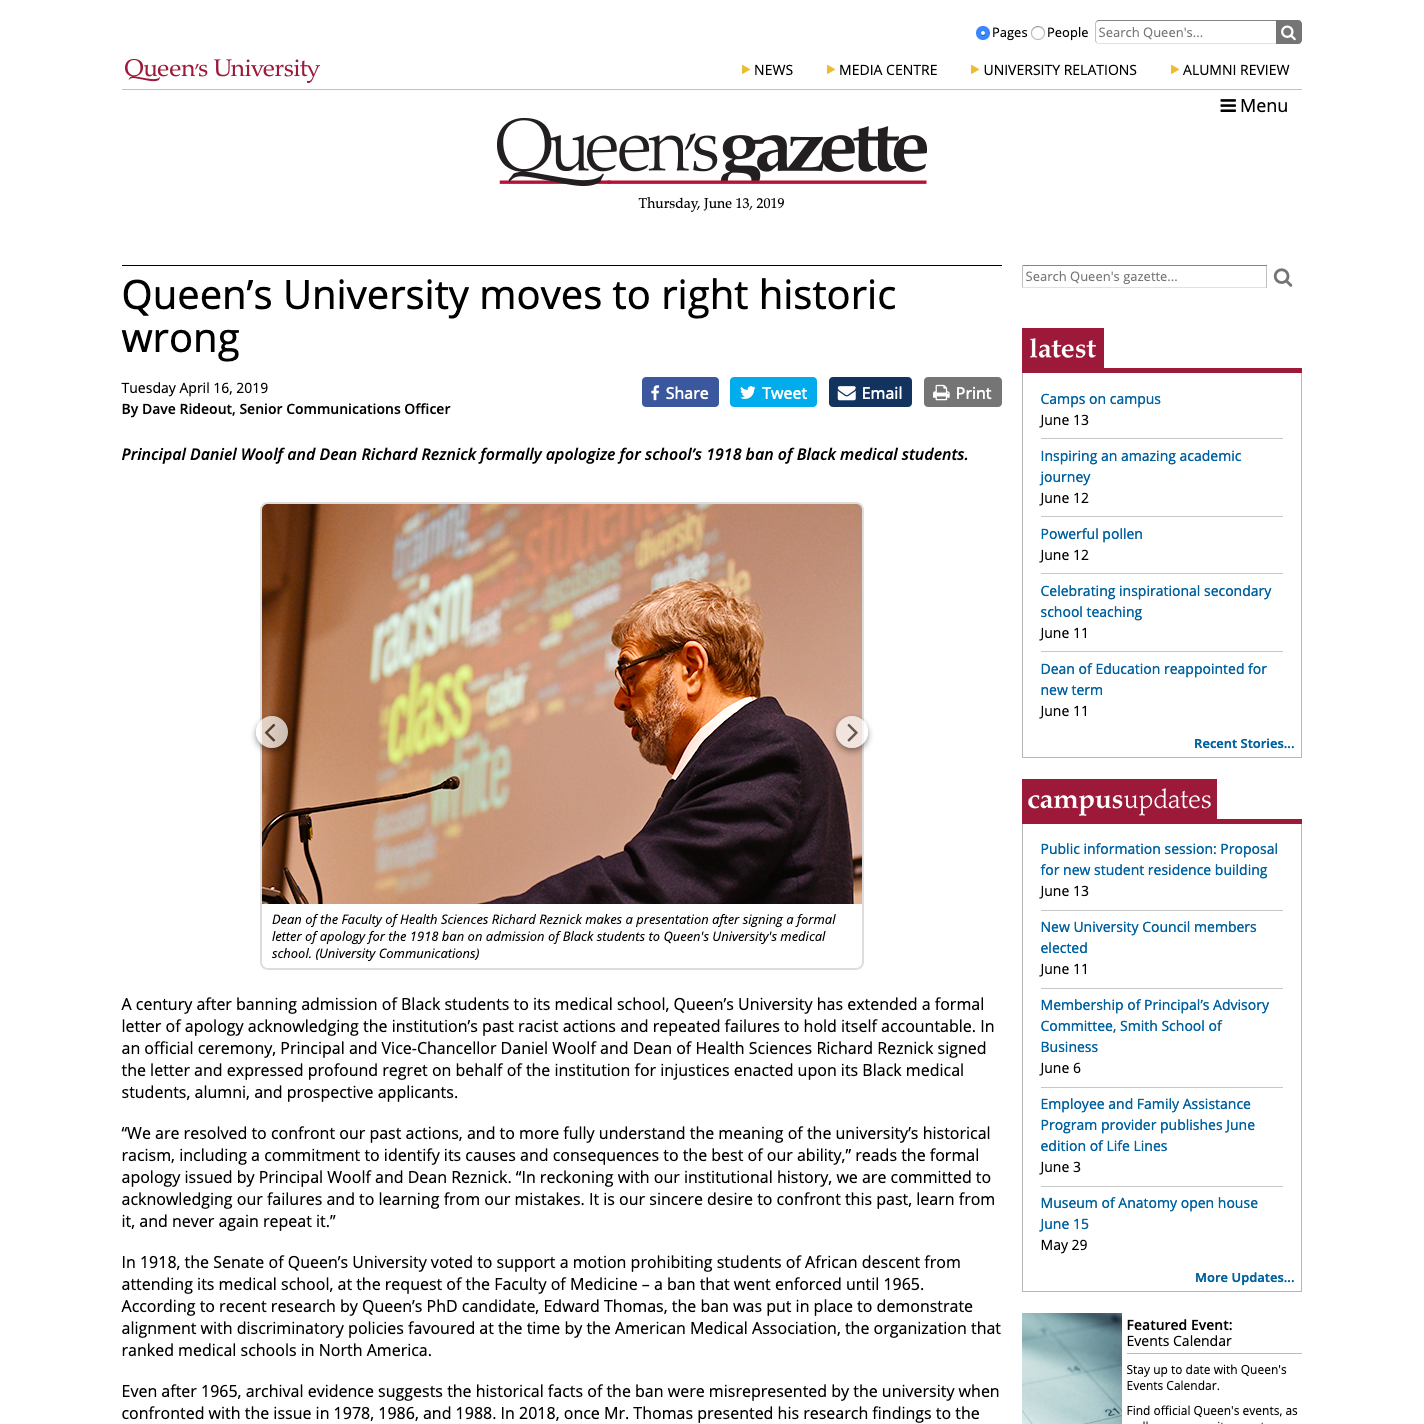 Queen's University moves to right historic wrong